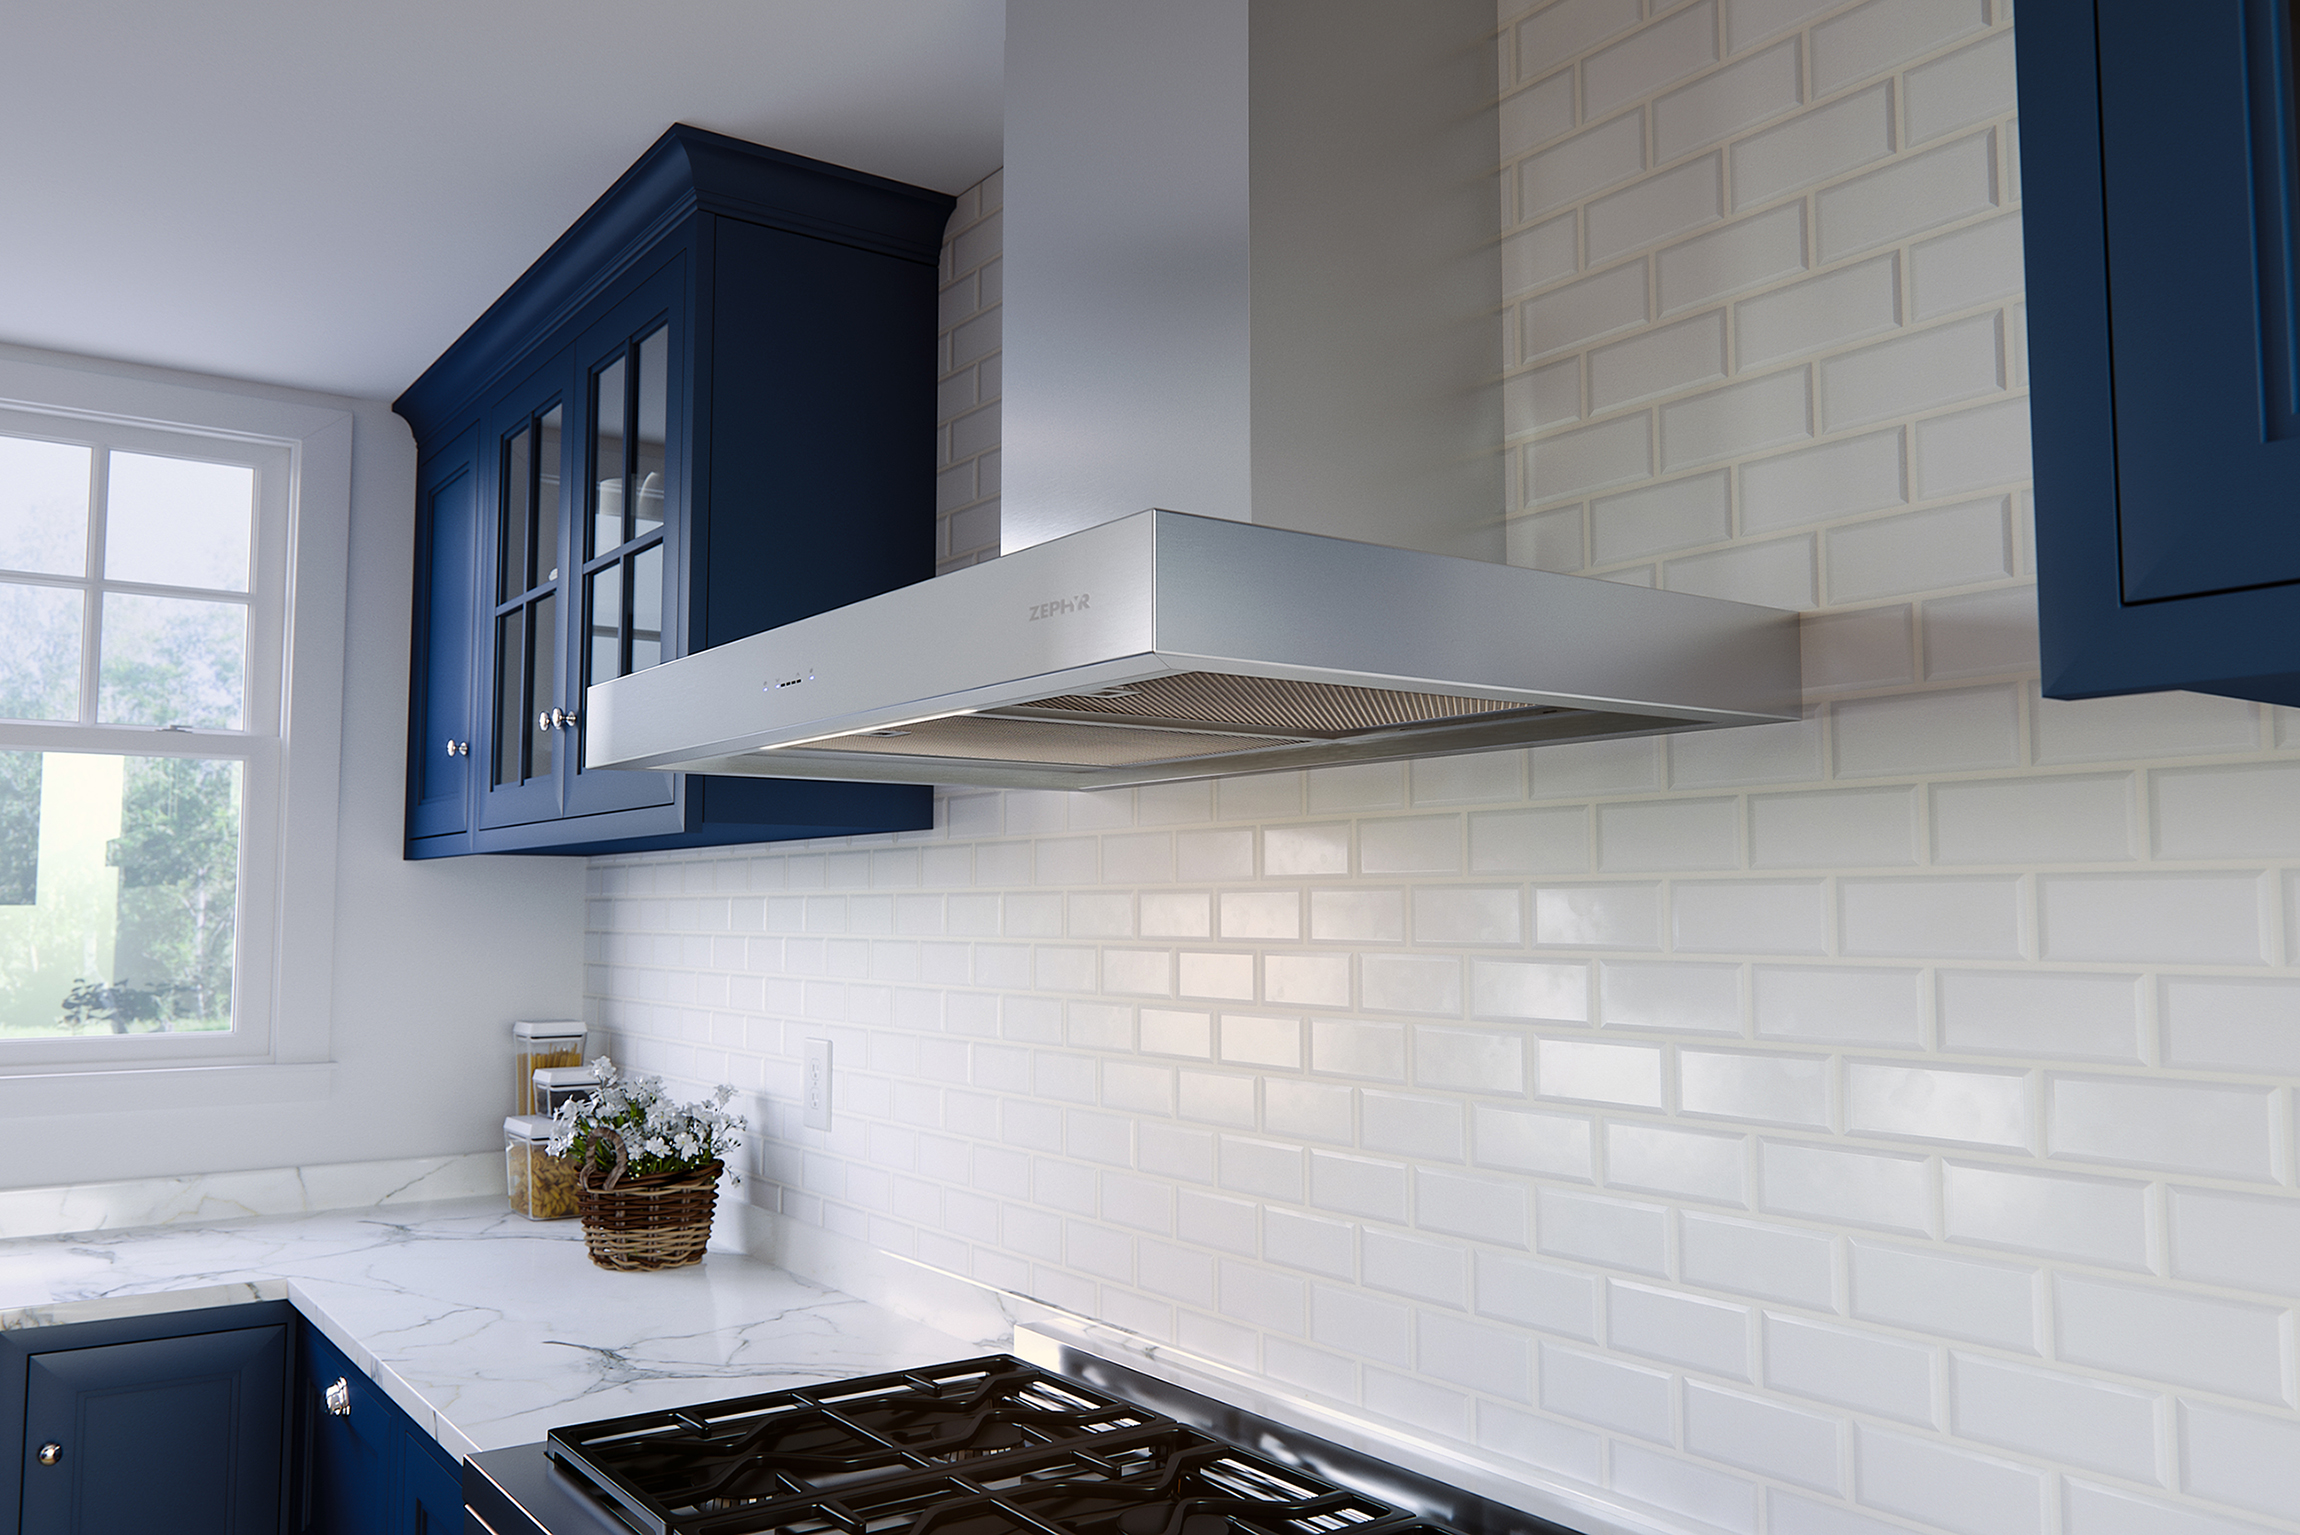 kitchen island cabinets with hood windows range zephyr modern under for cabinet recirculating design and chic plus